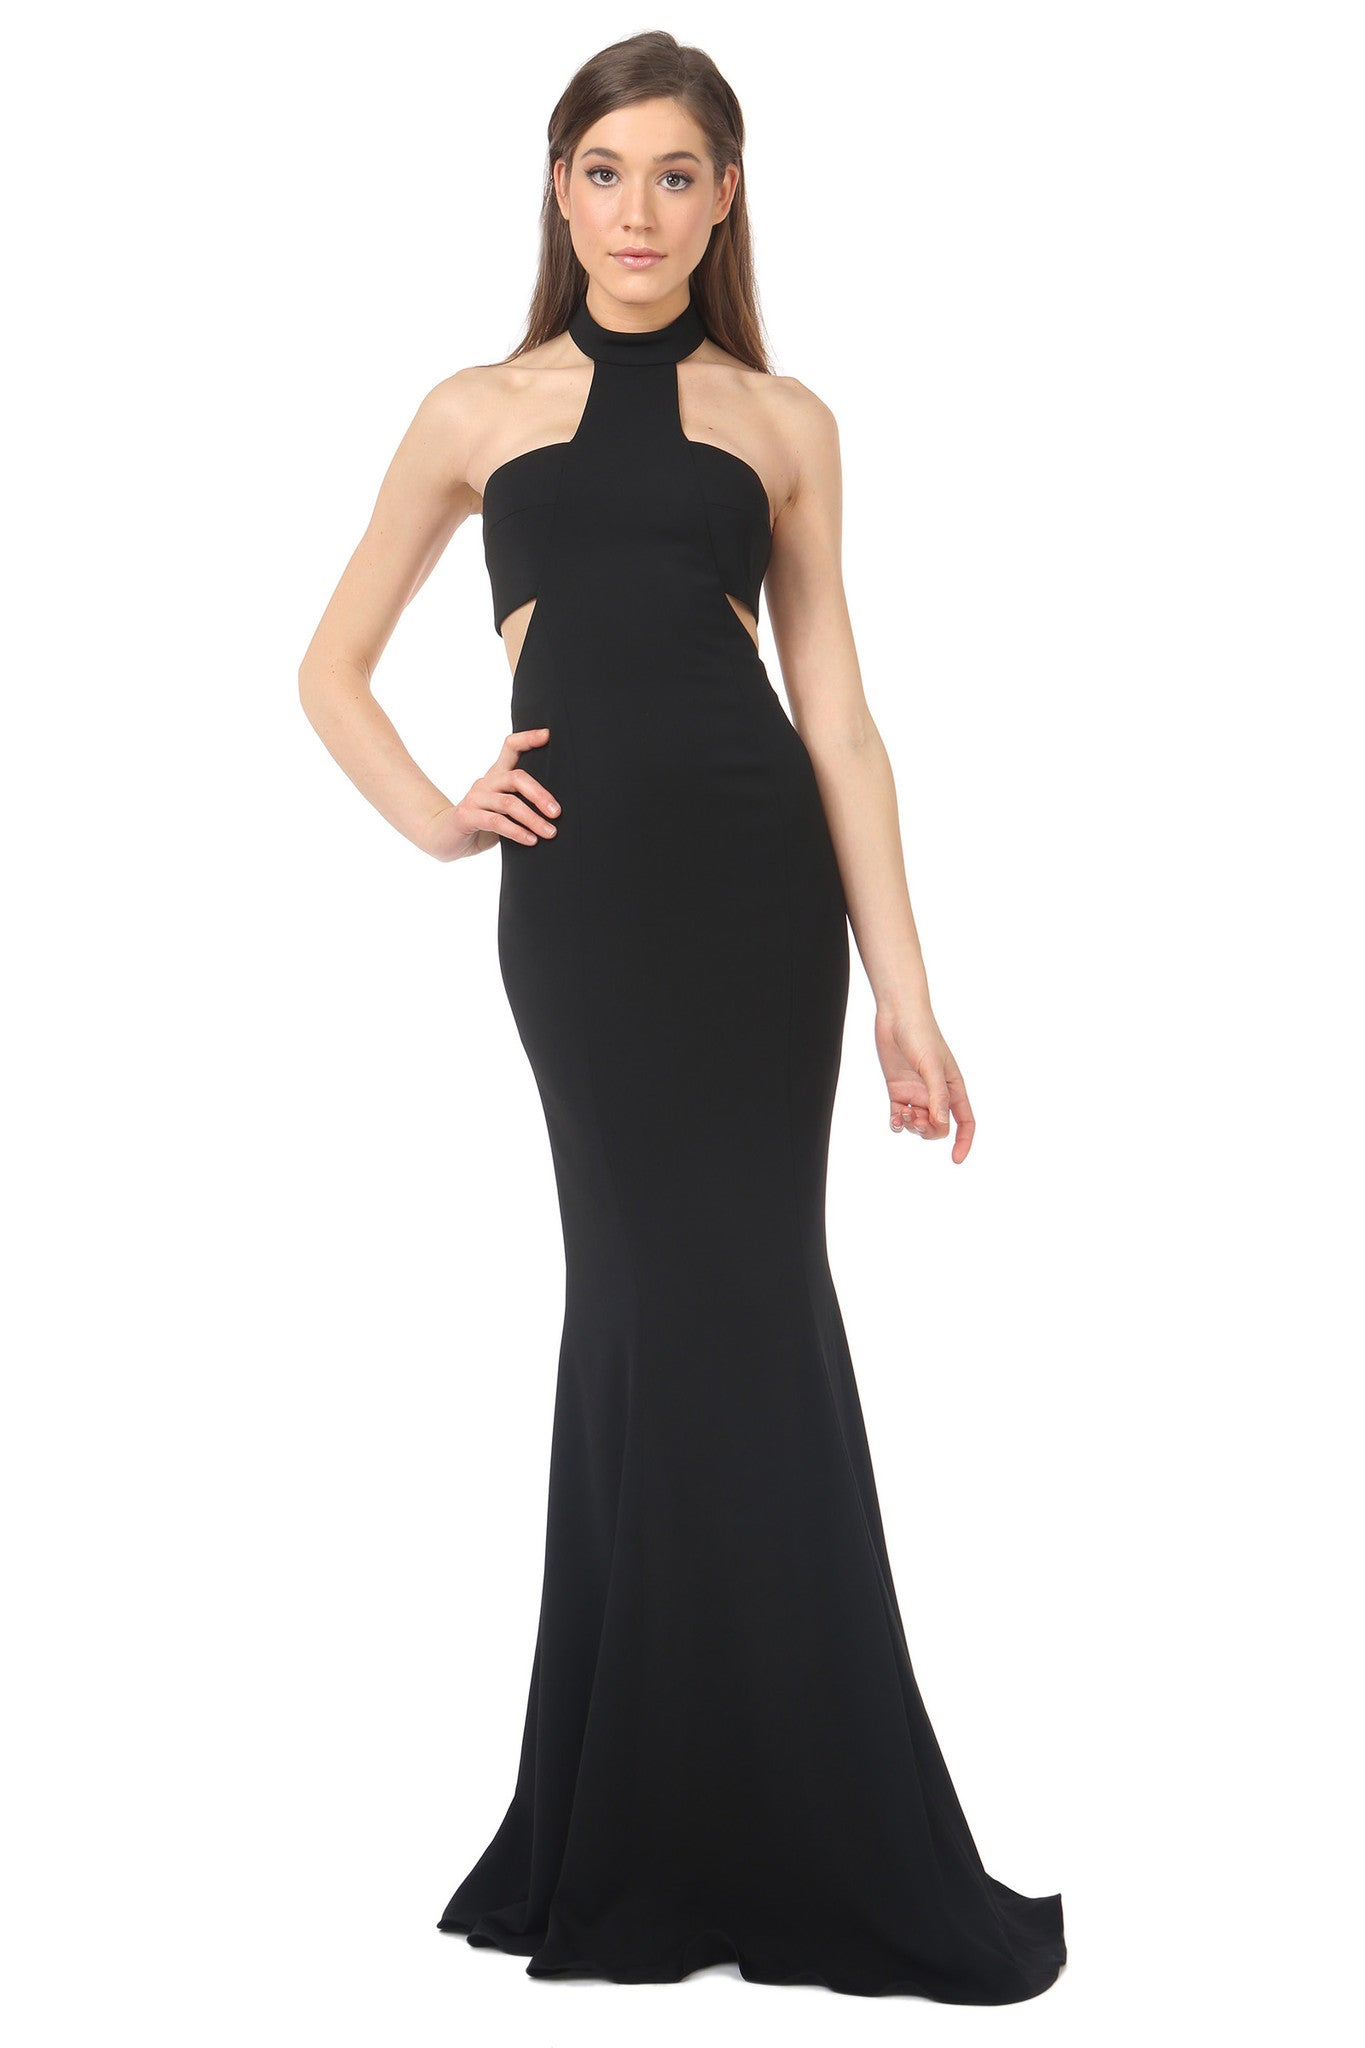 Jay Godfrey Black High-Neck Cut-Out Dress - Front View